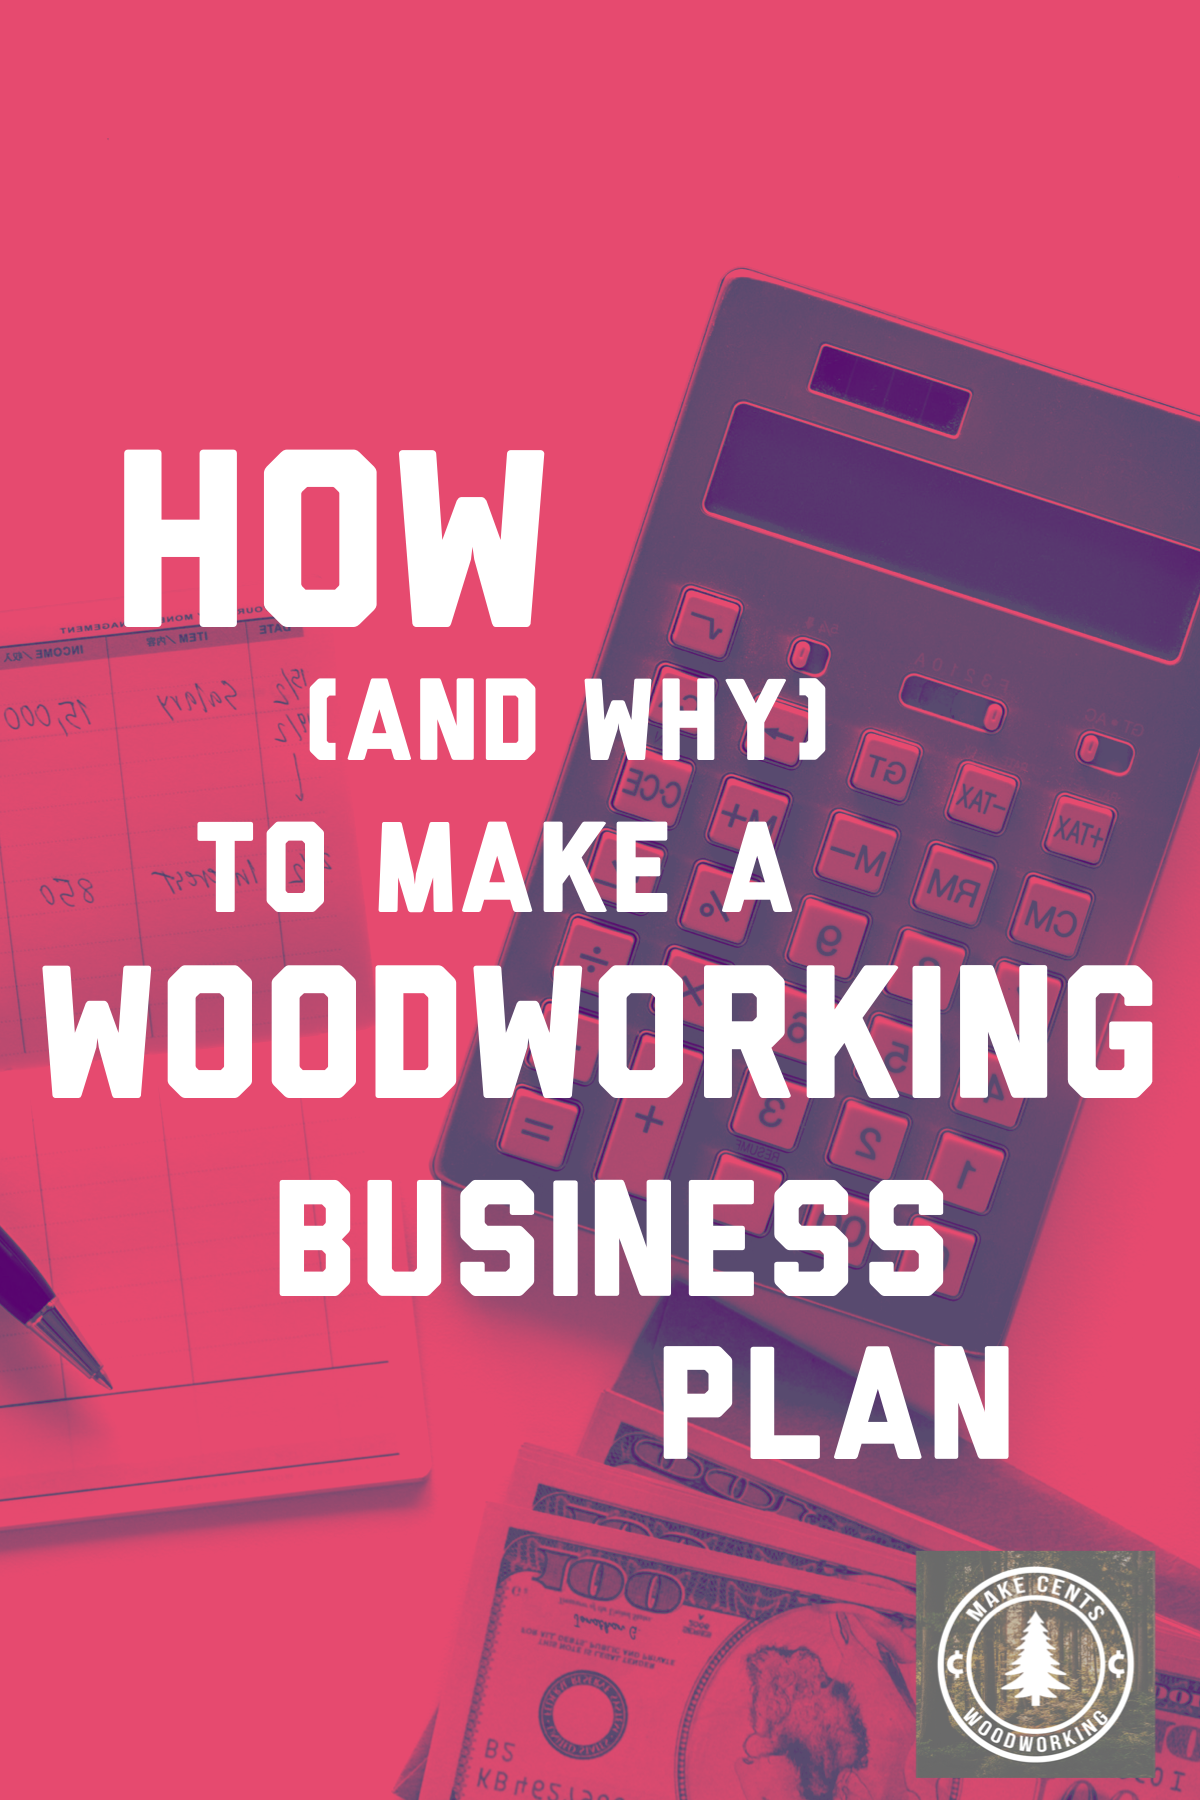 SoloWoodworker - A formal business plan